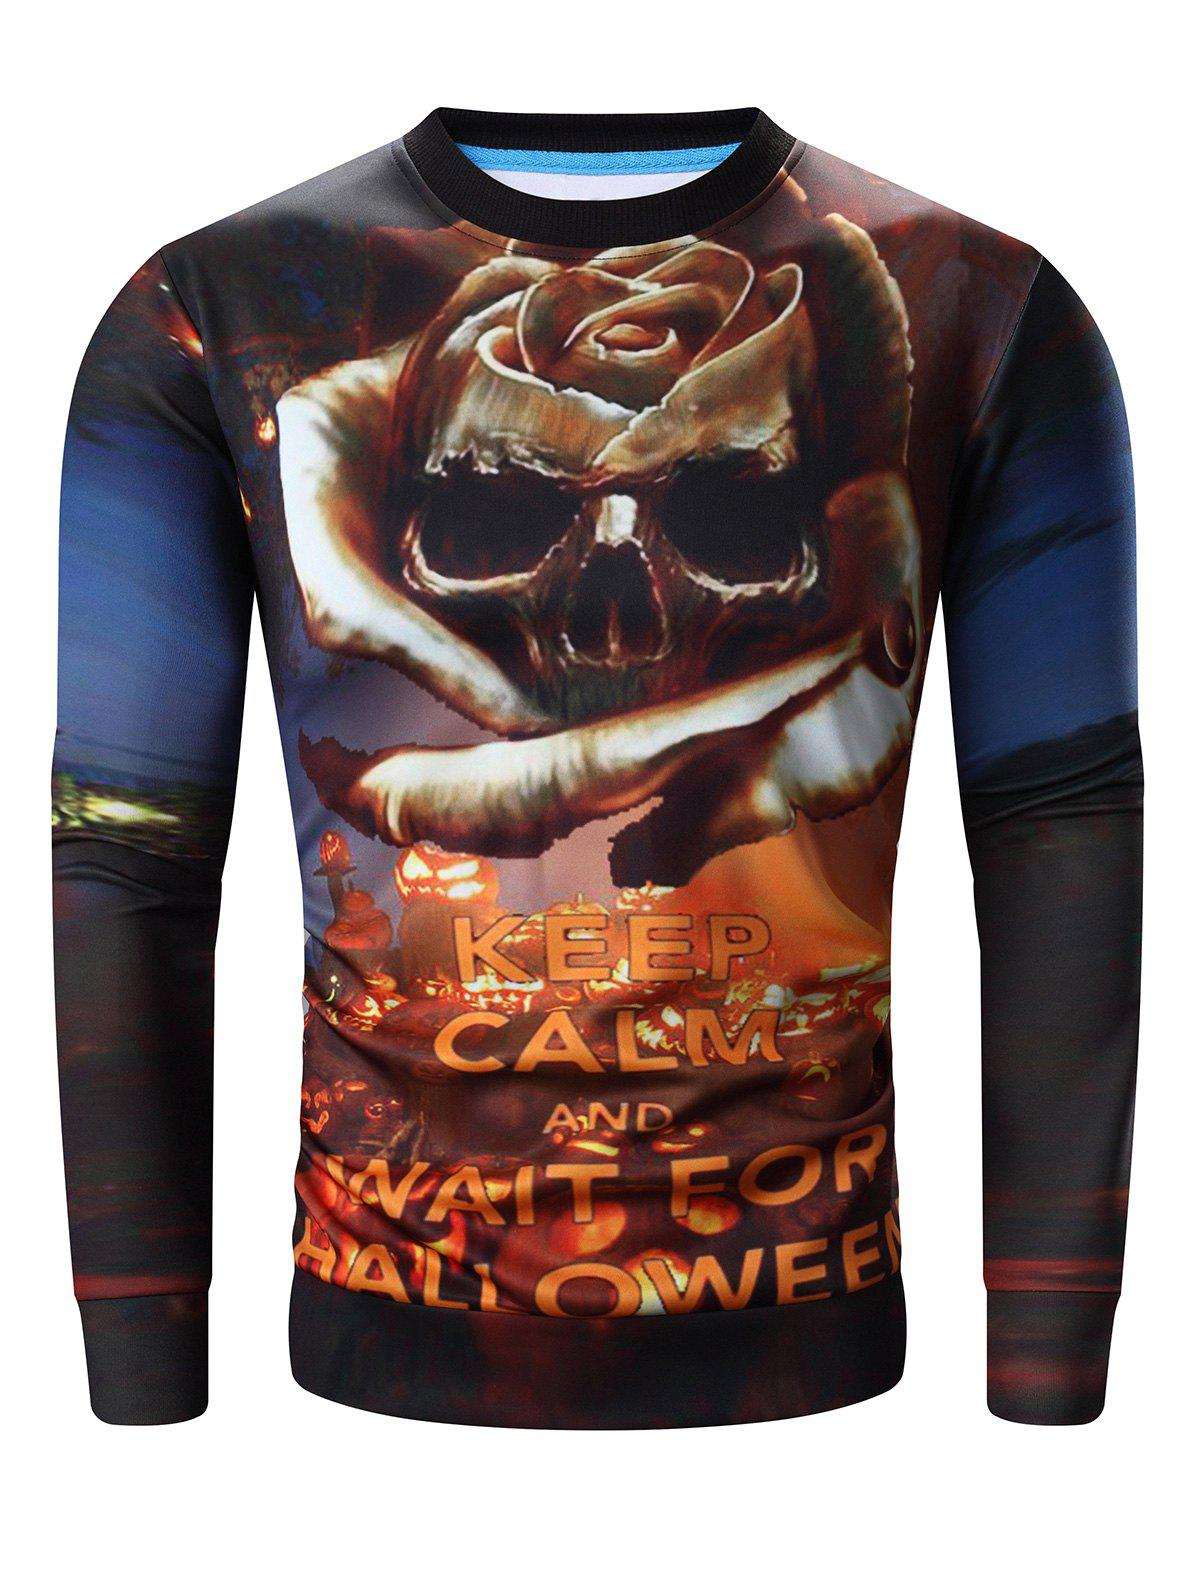 Round Neck Long Sleeve 3D Halloween Pumpkin Lamp and Skull Print Sweatshirt mac mineralize blush румяна для лица dainty